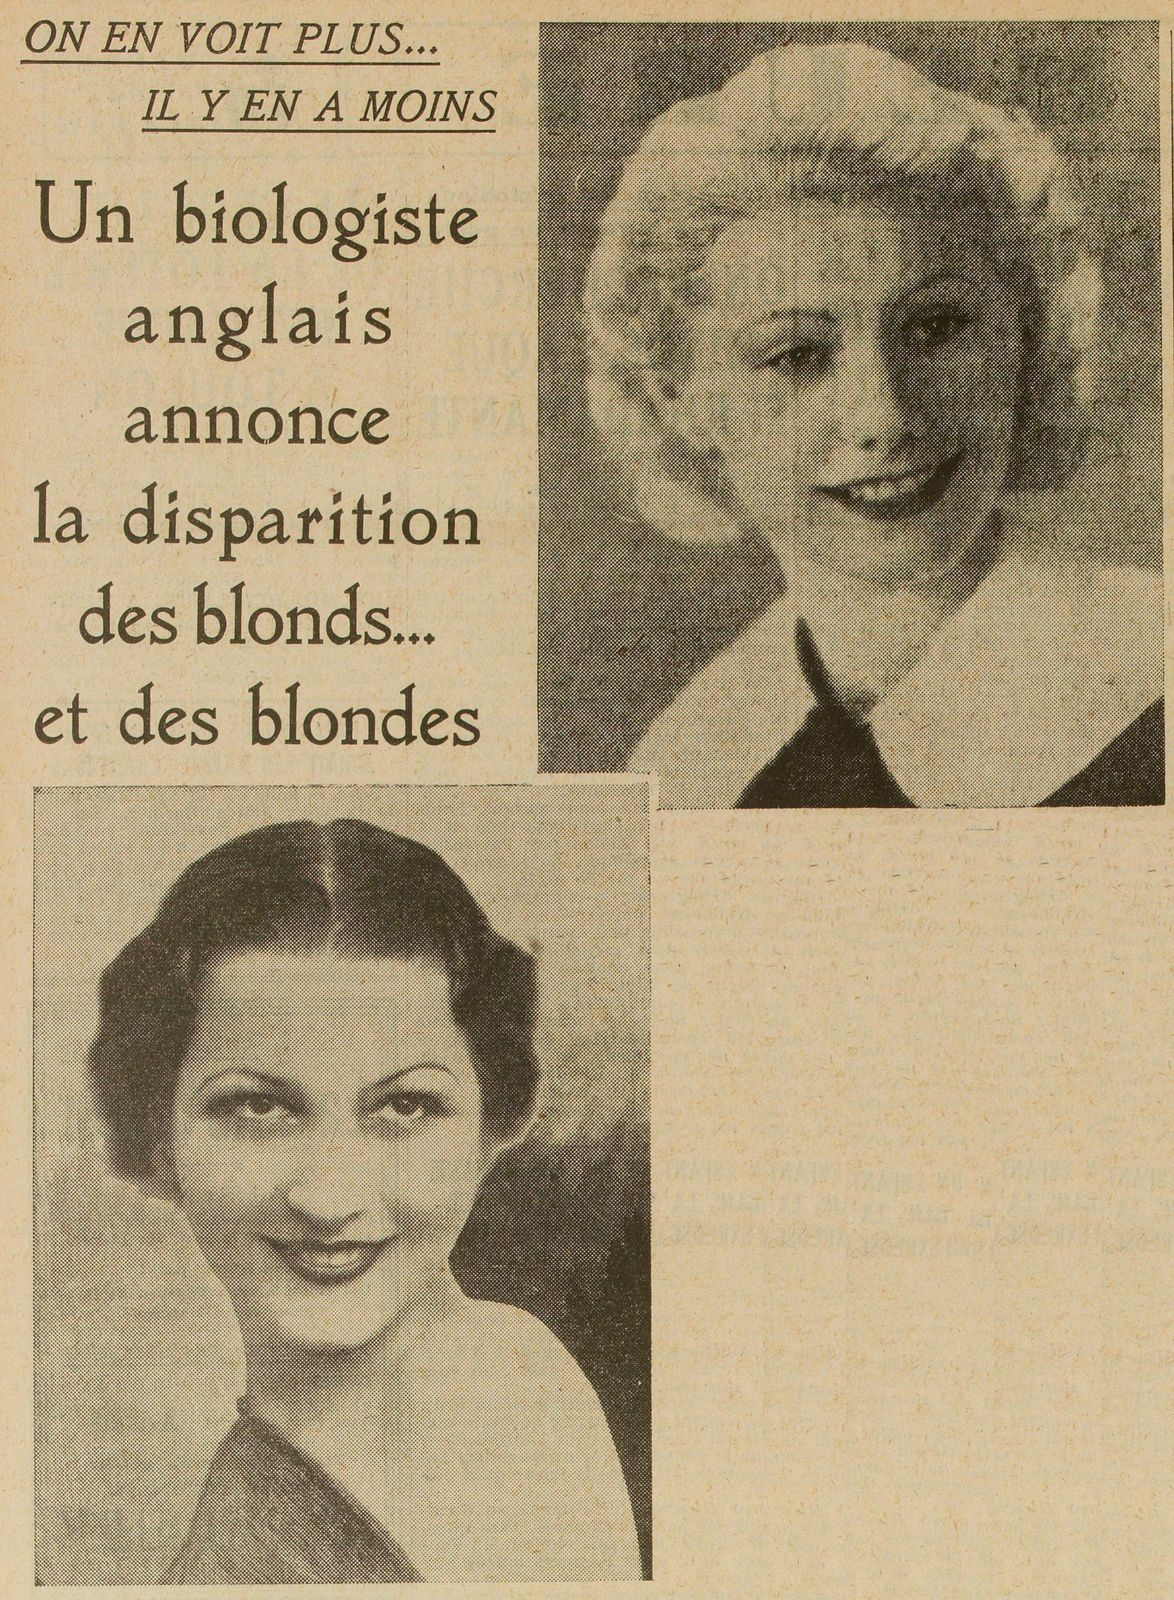 Roger Simonet - La Disparition des blonds… et des blondes (1937)